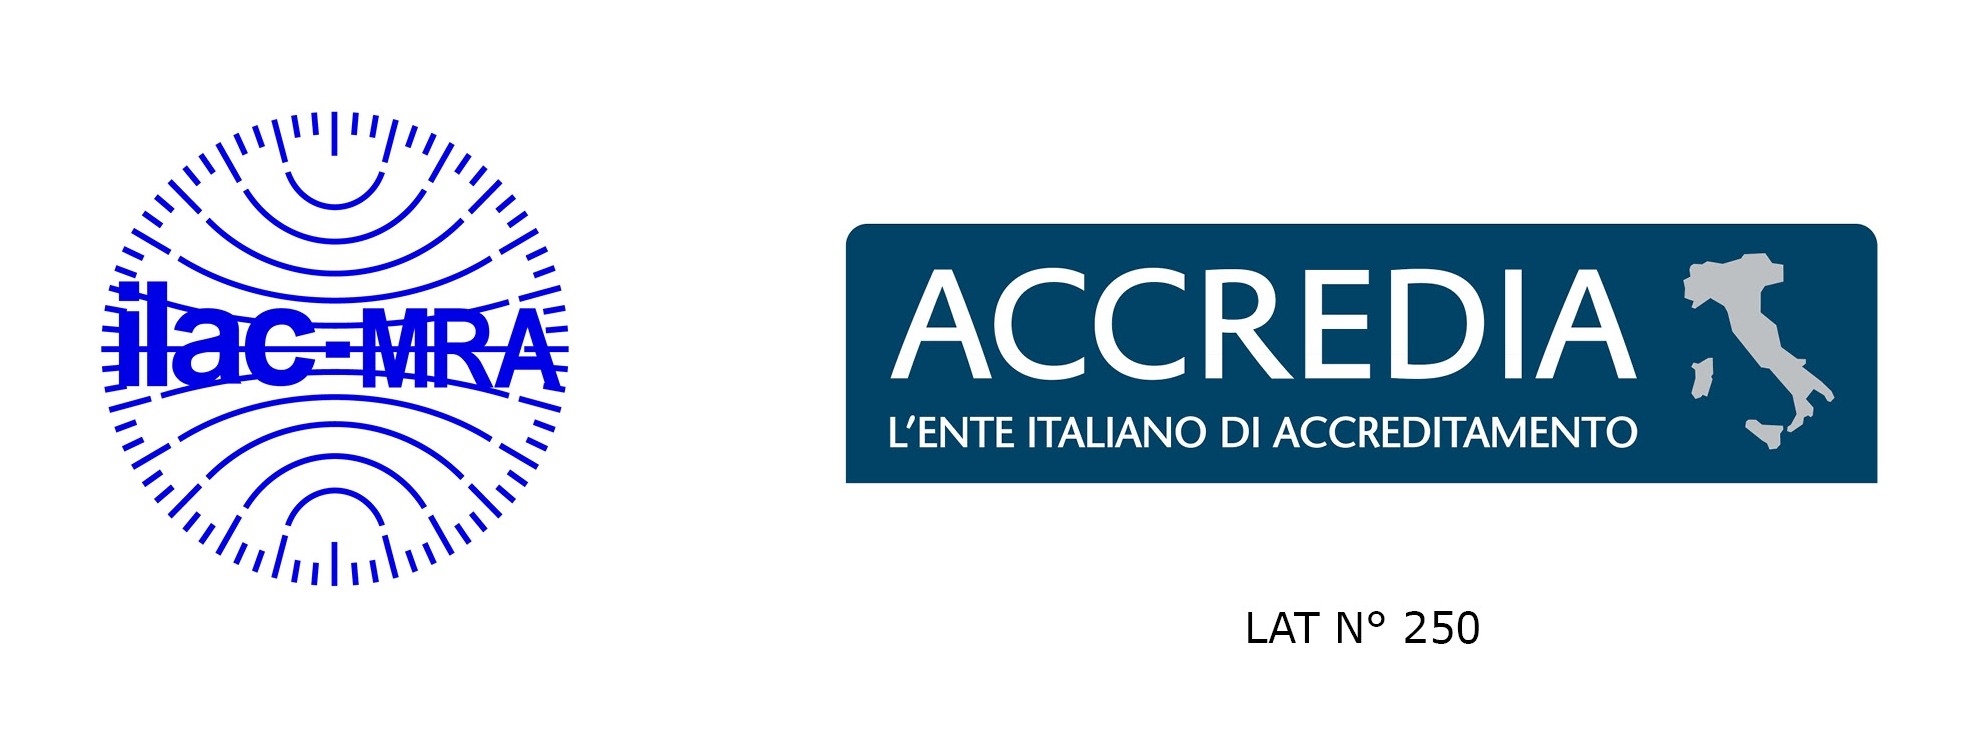 Laboratory Maddalena accredited by ACCREDIA